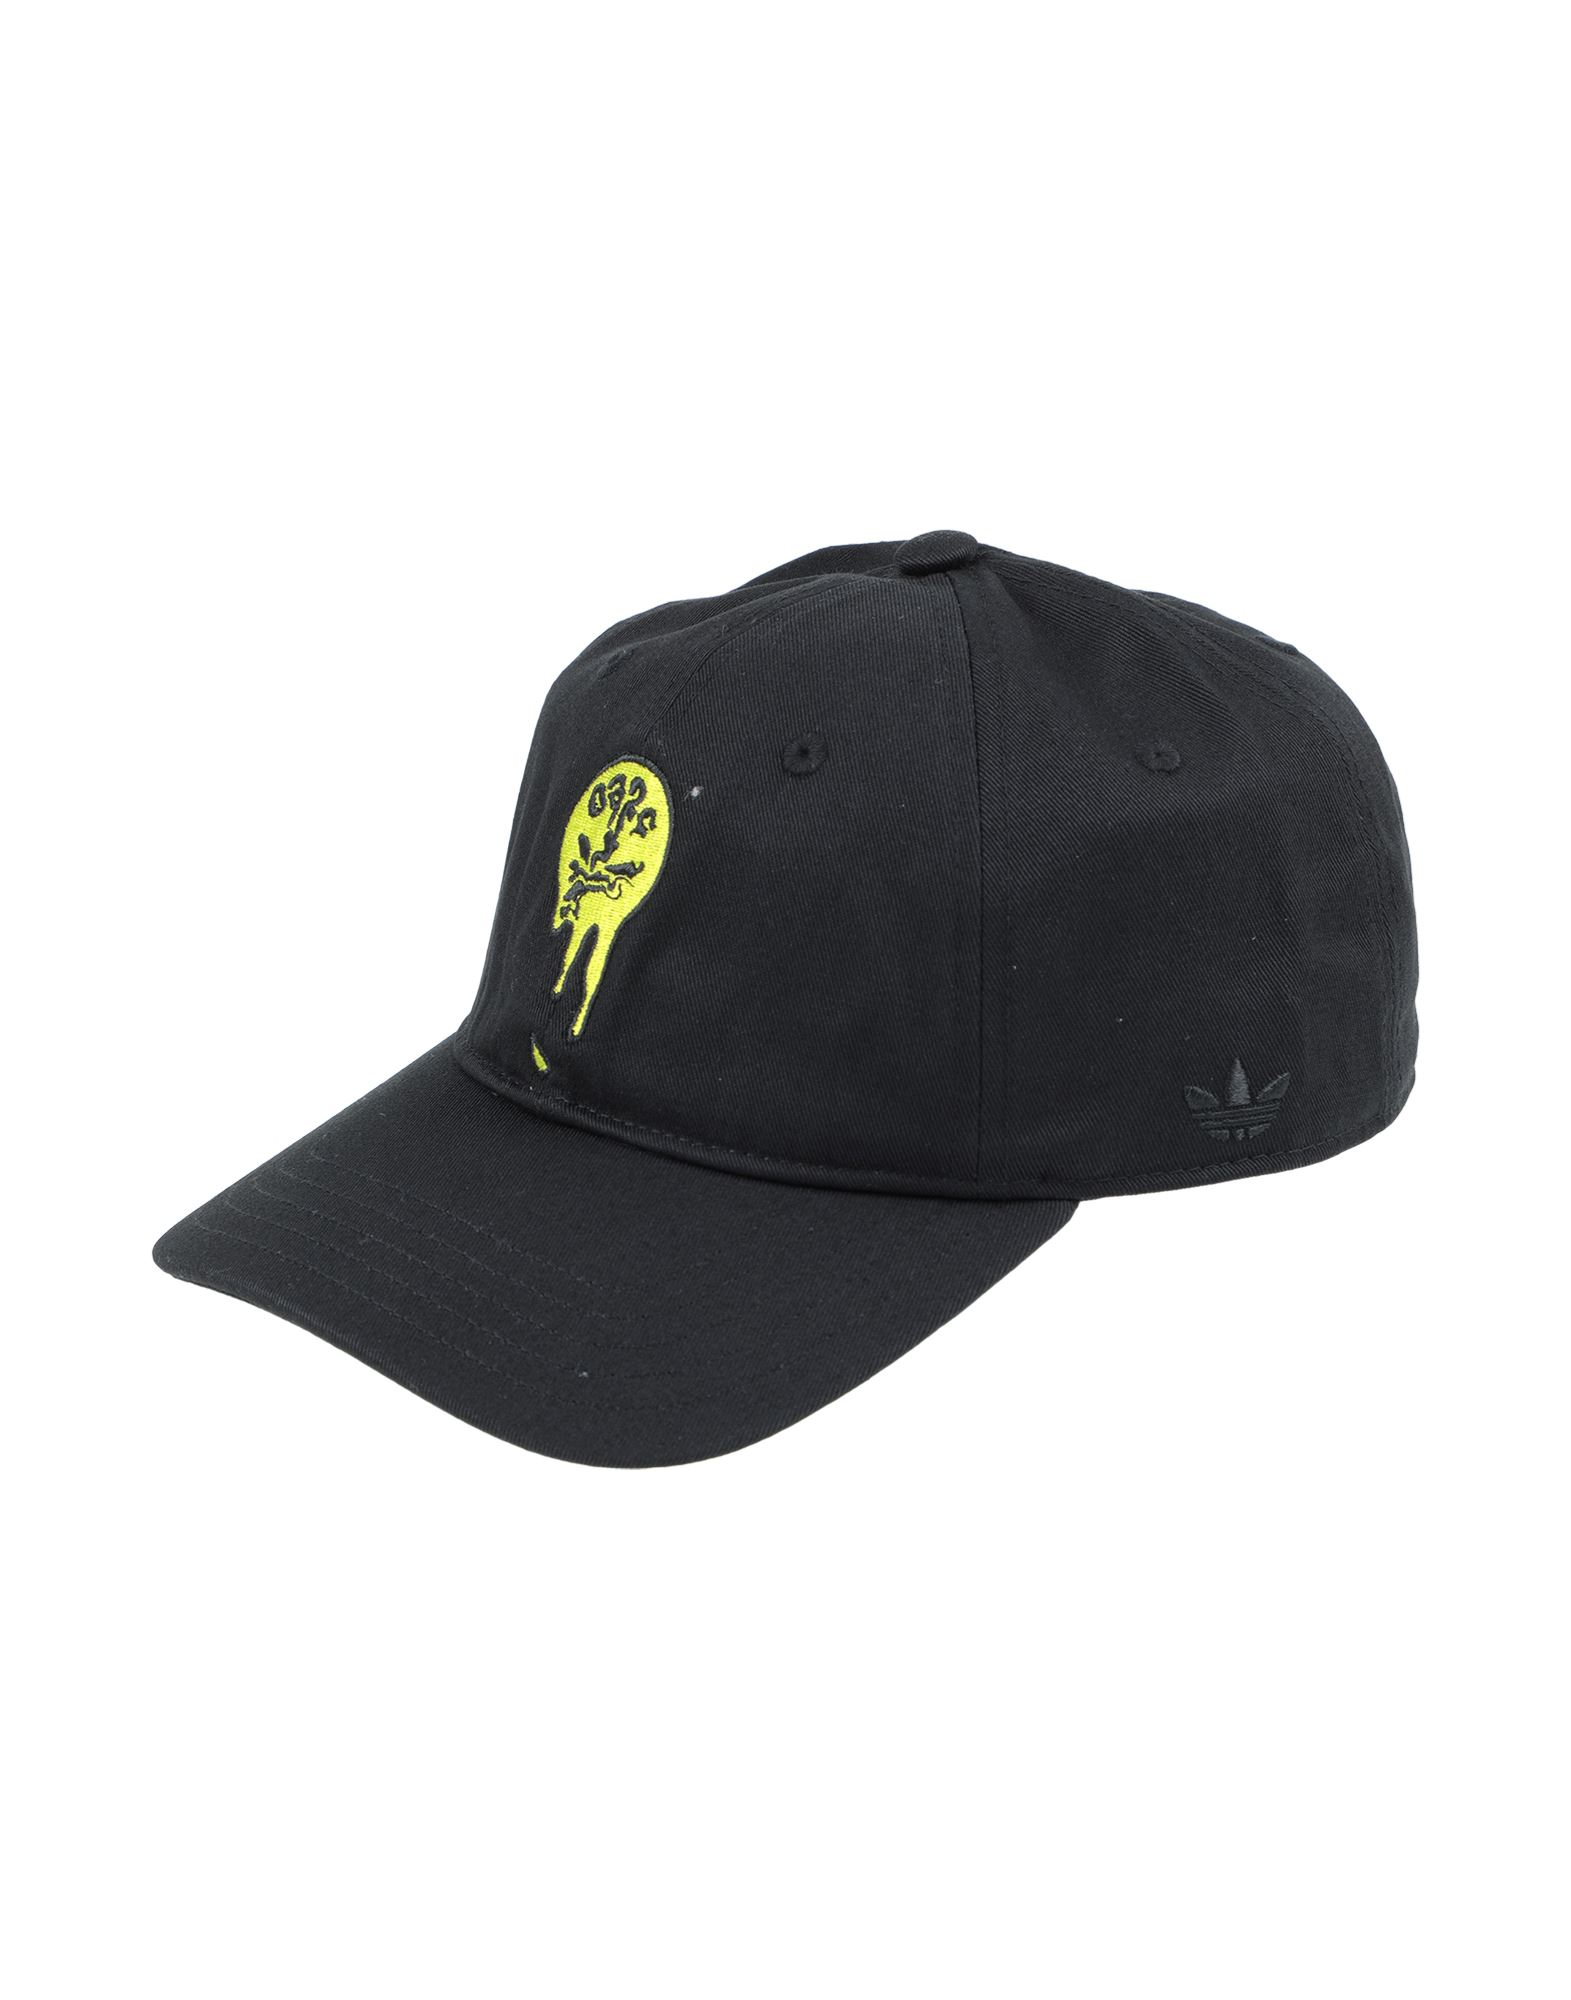 Adidas By 032c Hats In Black